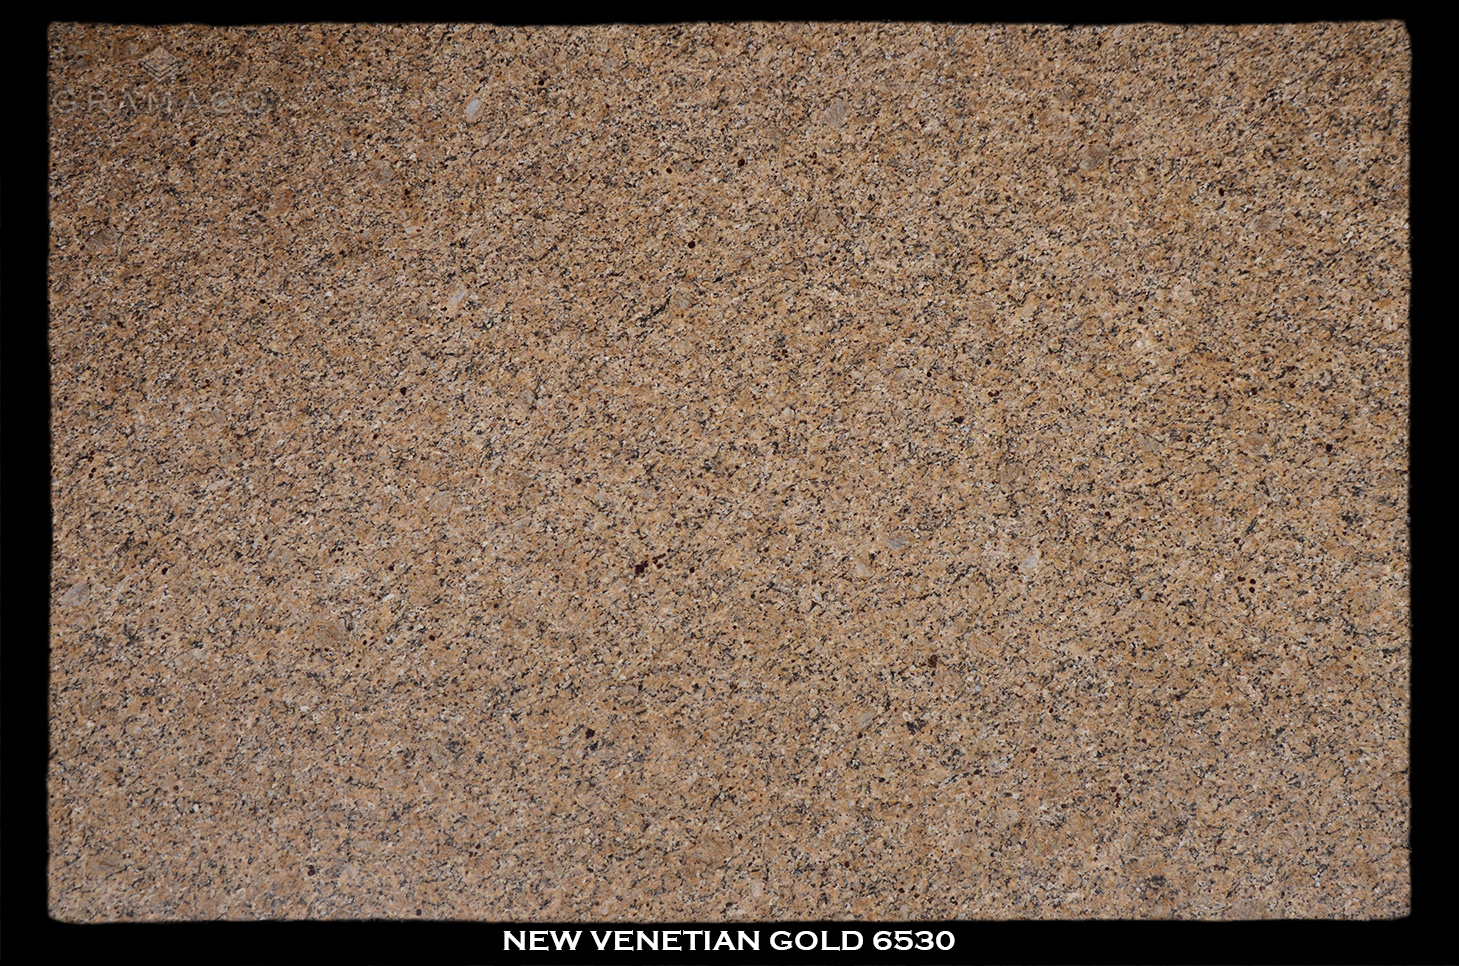 NEW-VENETIAN-GOLD-6530---FULL-SLAB-BLACK